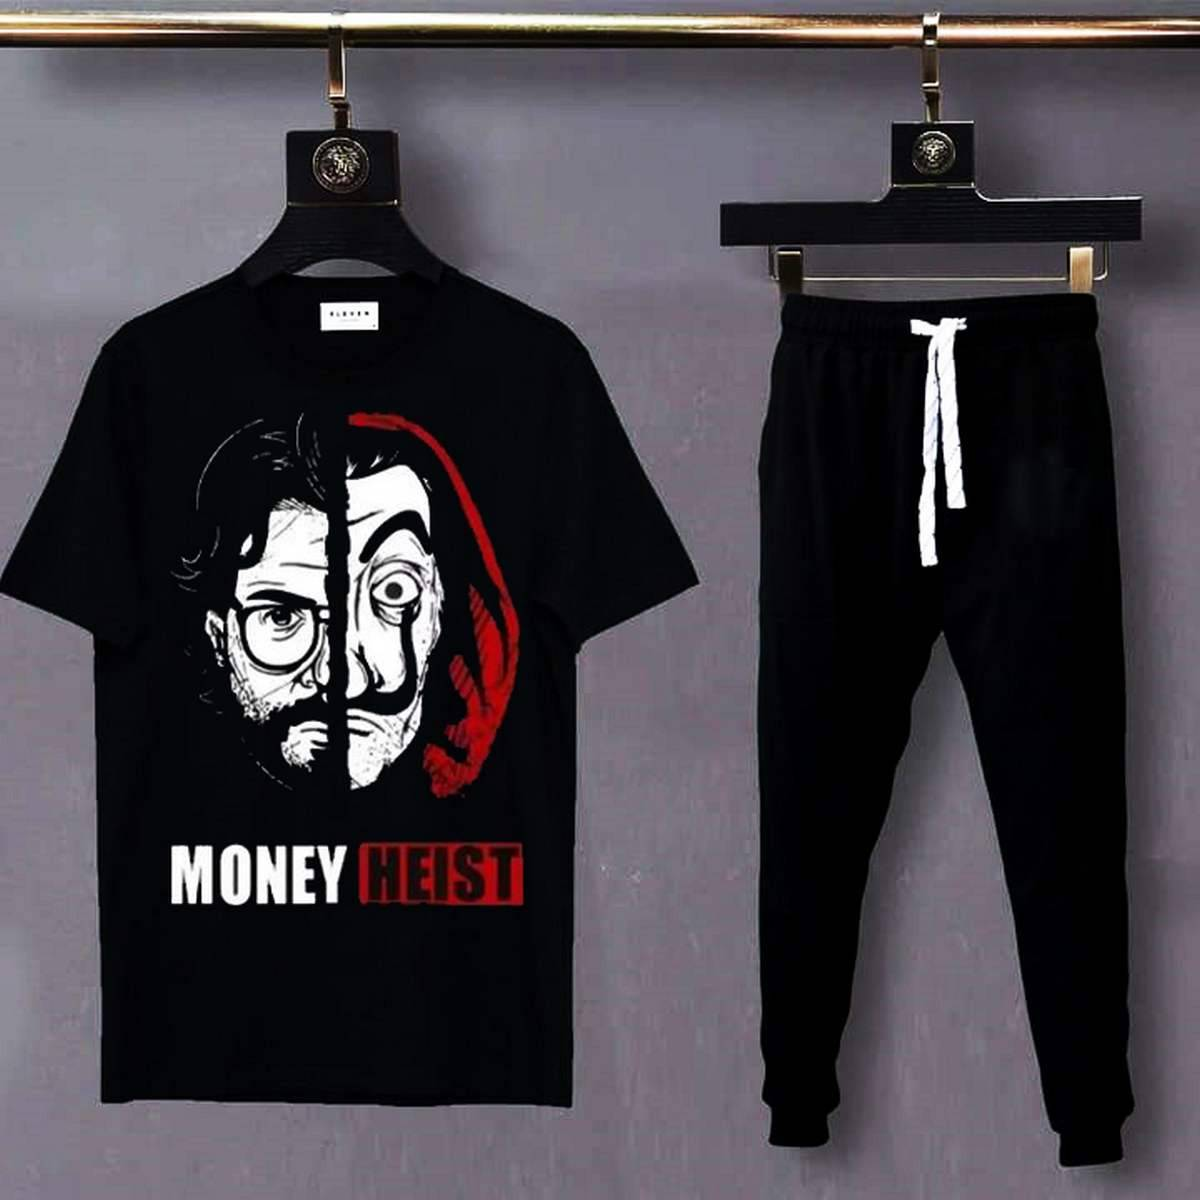 Money Heist Printed T Shirt And Trouser Cotton Half Sleeves Round Neck Tees Summer Collection Top Quality For Men - IJ Traders